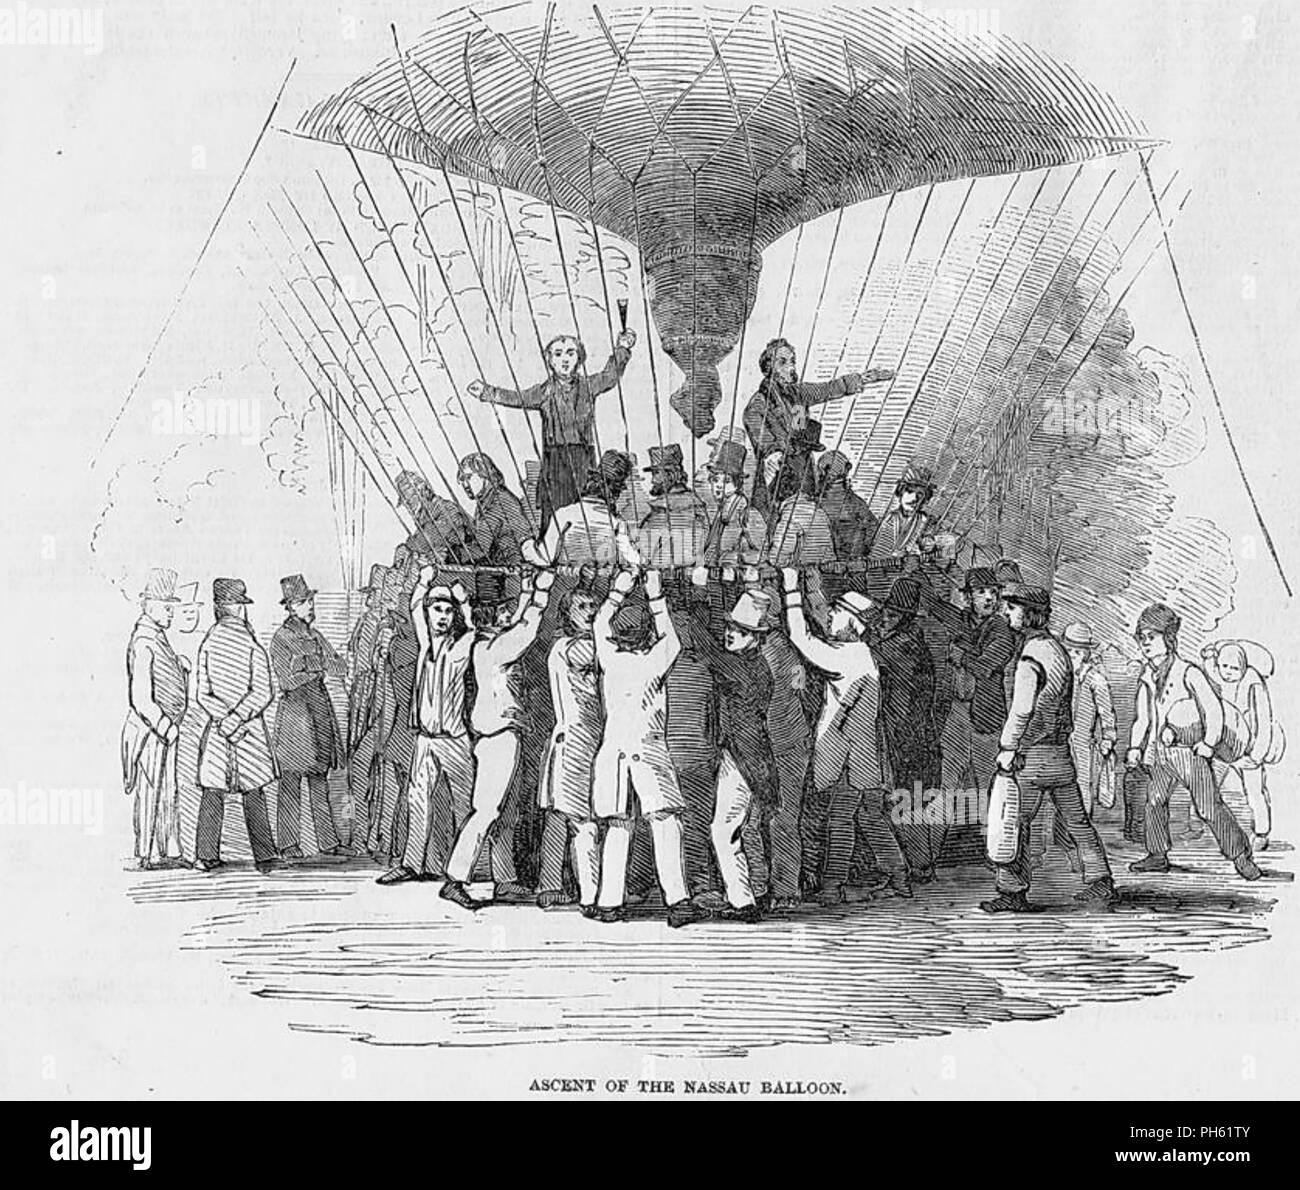 CHARLES GREEN (1785-1870) English balloonist. Launching of his of his balloon The Great Nassau from Vauxhall Gardens, London, 24 July 1836 - Stock Image